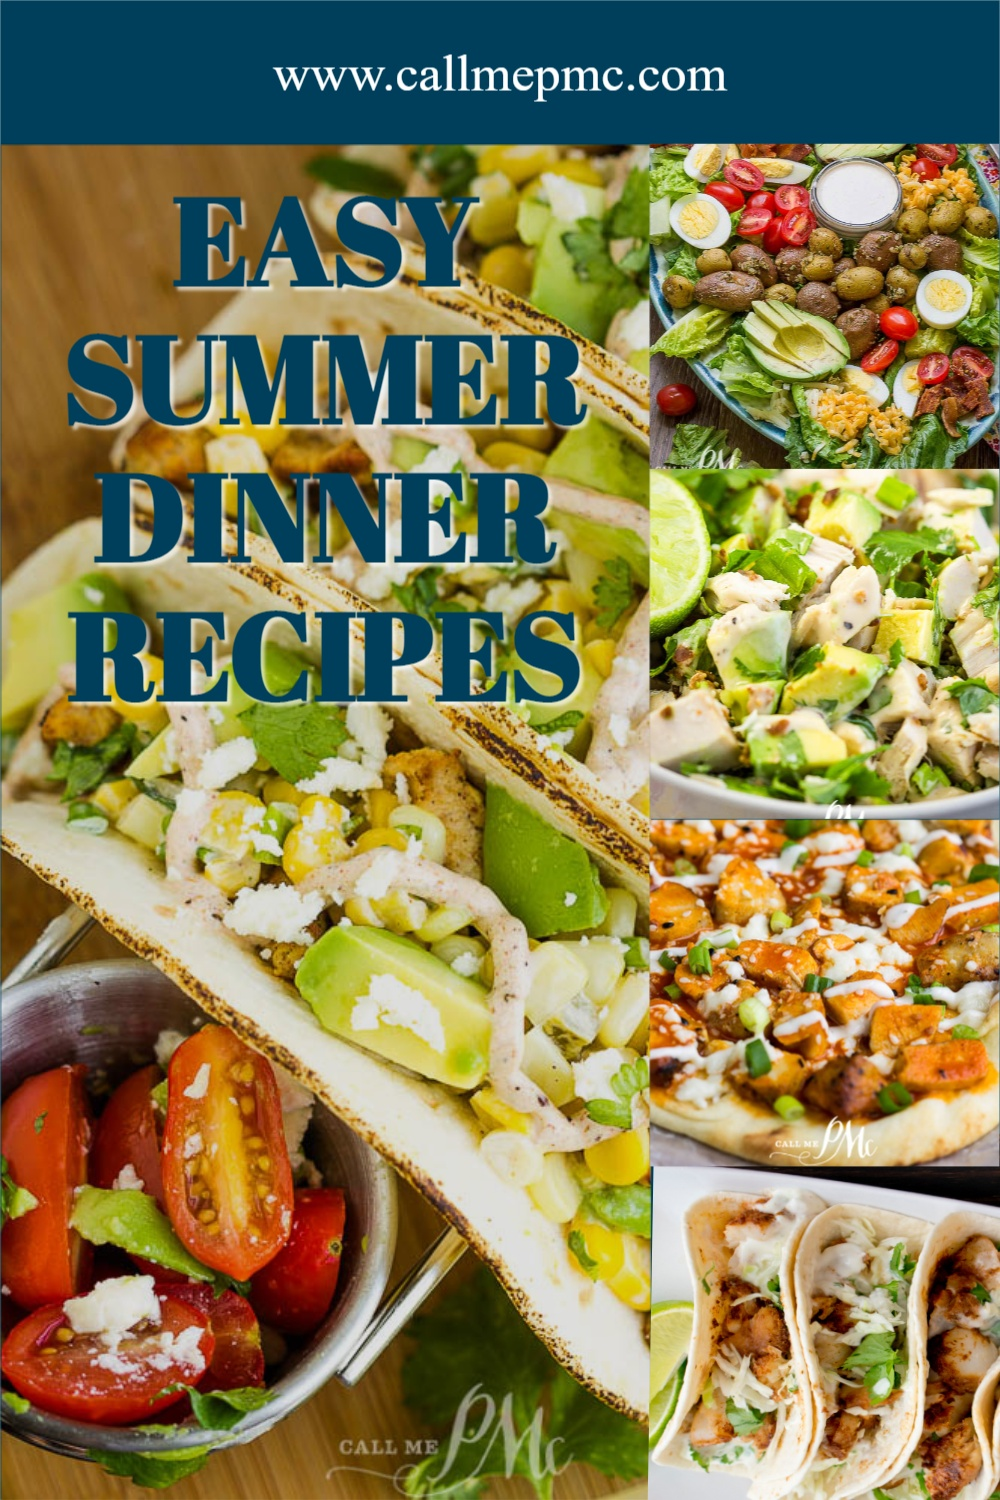 Easy Summer Dinner Recipes a collection of recipes that are quick, easy, delicious, & perfect for busy, hot summer weeknights.